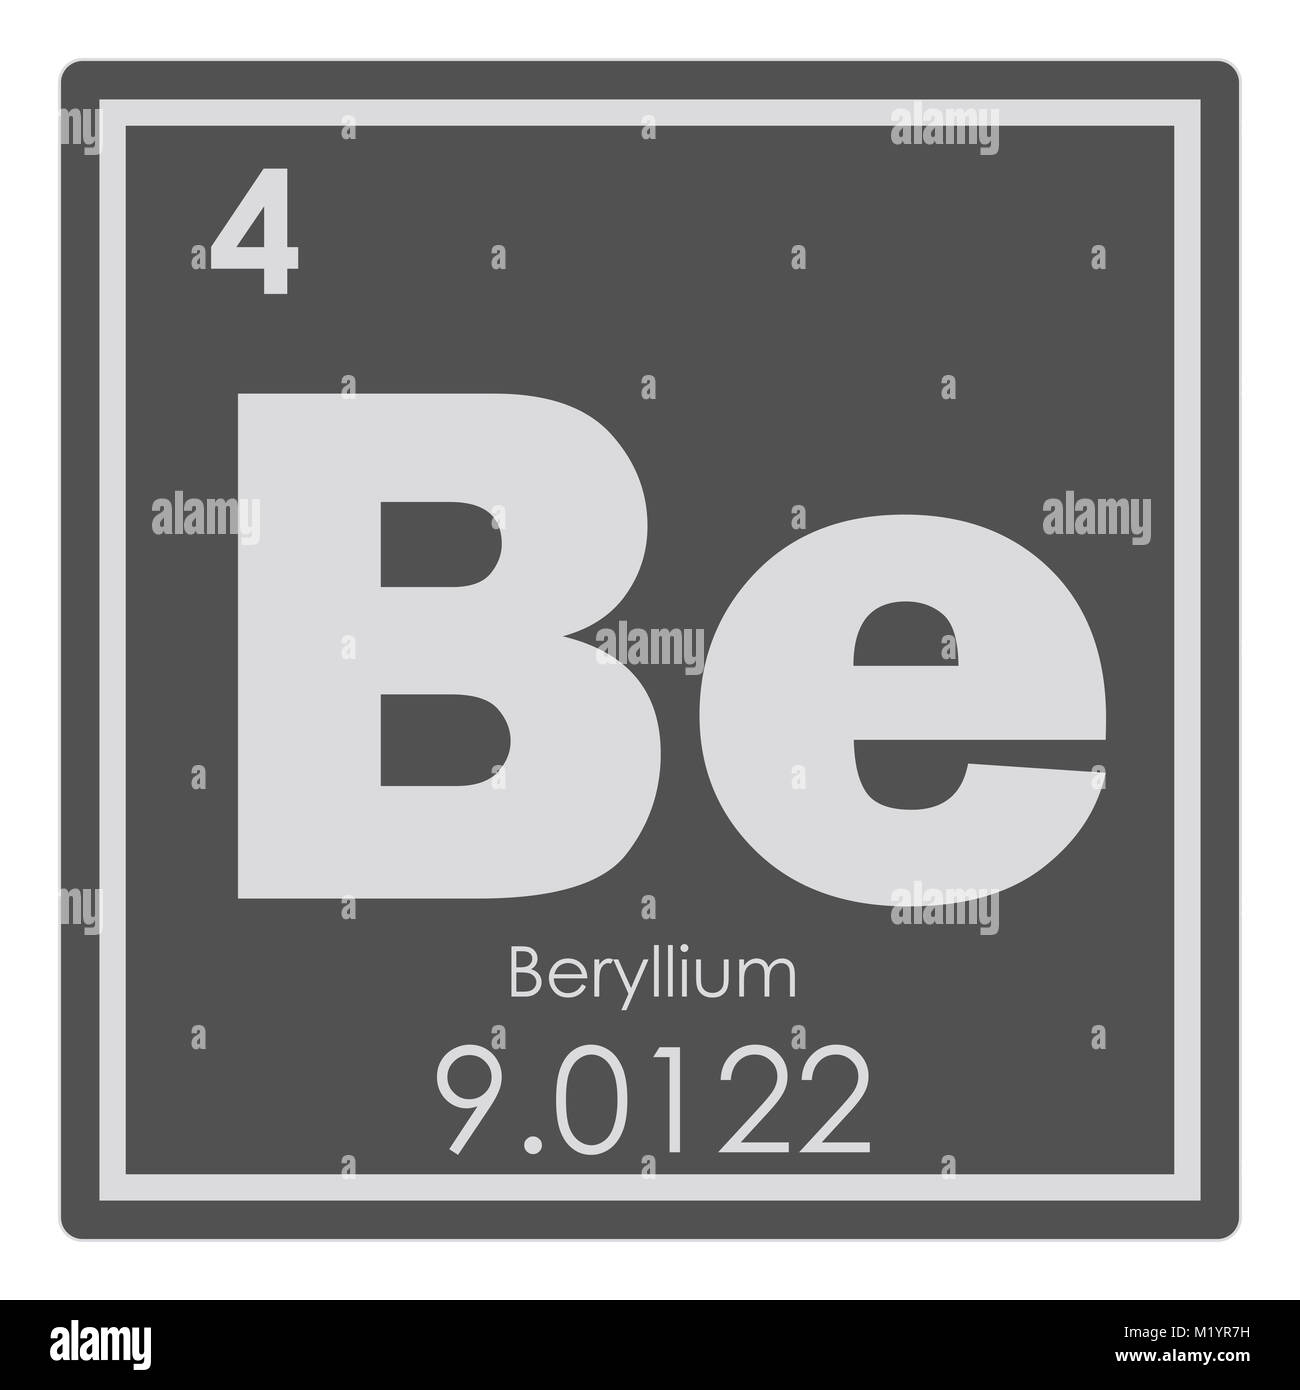 Beryllium atom stock photos beryllium atom stock images alamy beryllium chemical element periodic table science symbol stock image urtaz Image collections